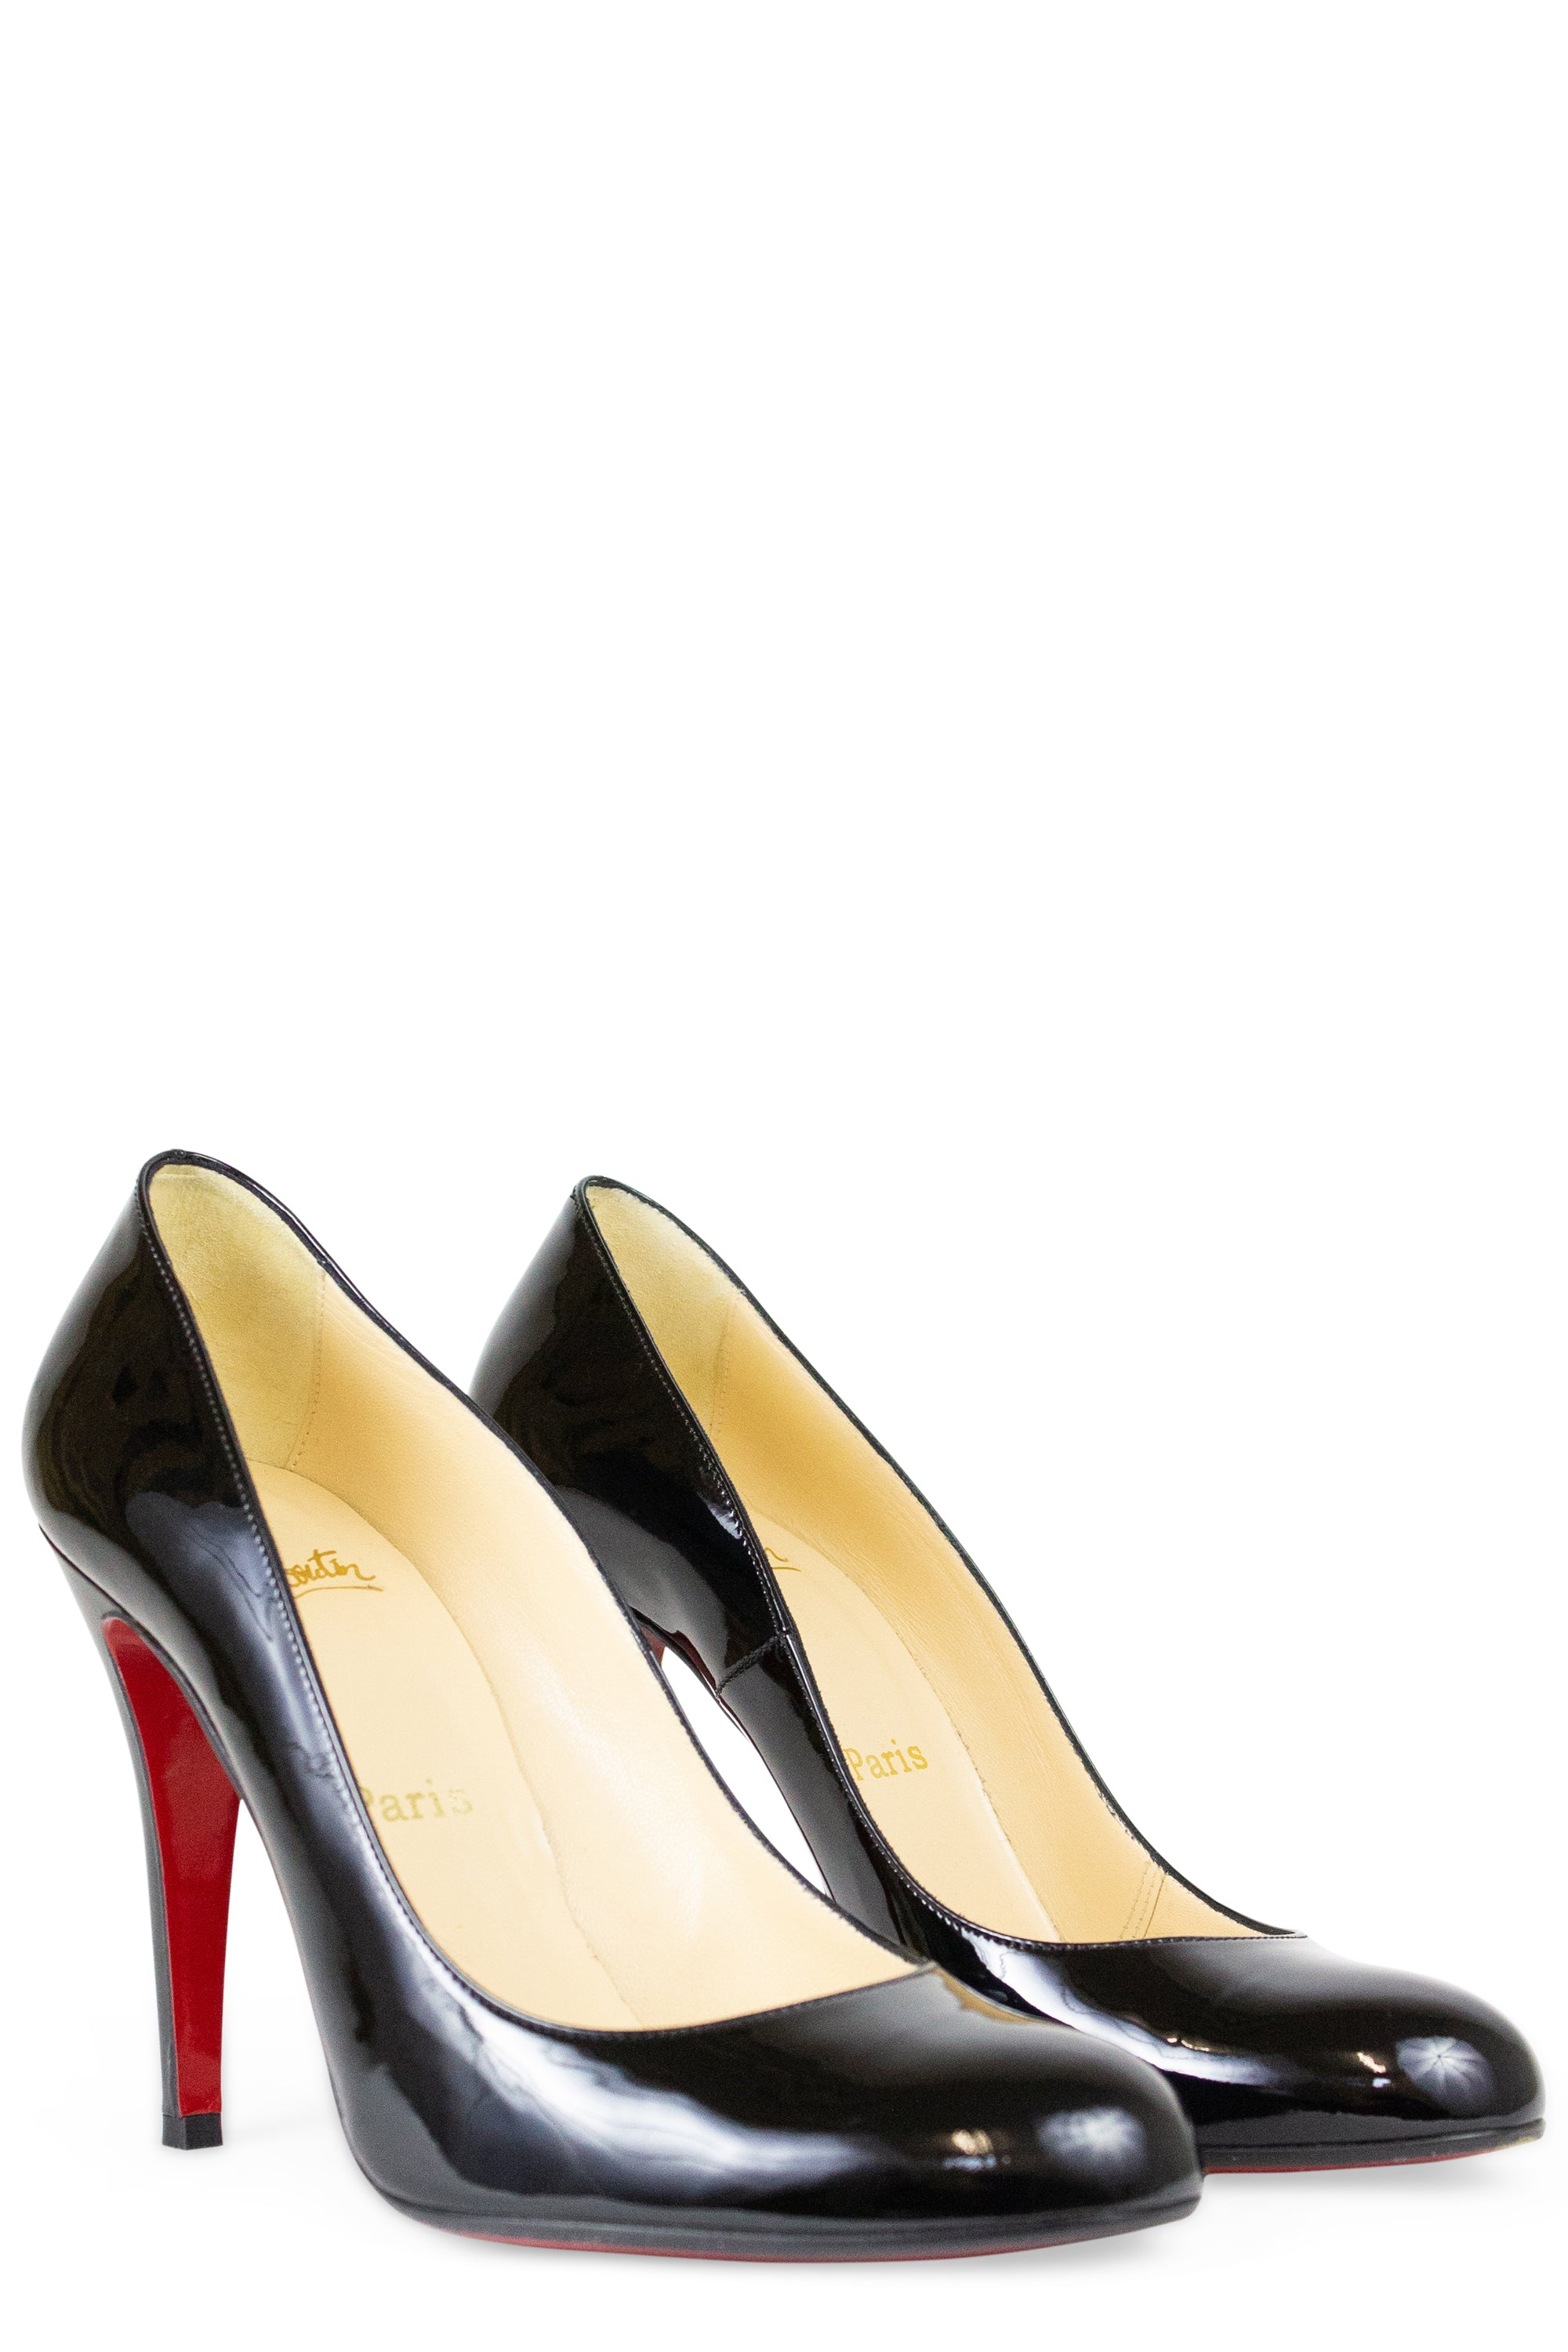 CHRISTIAN LOUBOUTIN Fifille Patent Pumps